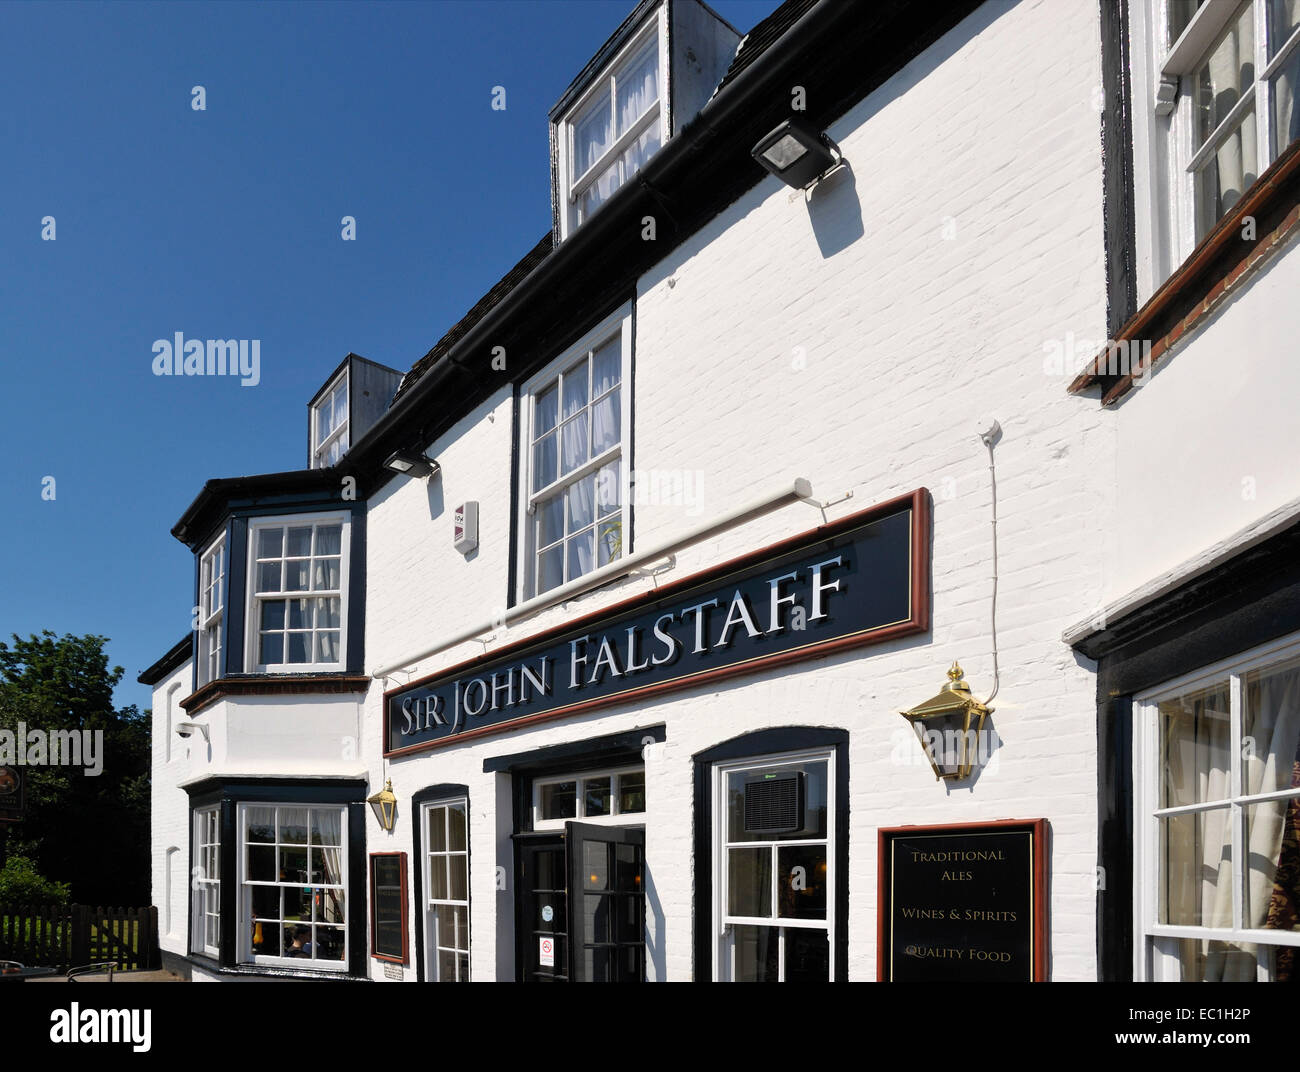 Sir John Falstaff Inn, opposite Charles Dickens's last home at Gad's Hill Place, Higham, , Rochester, Kent, and Stock Photo